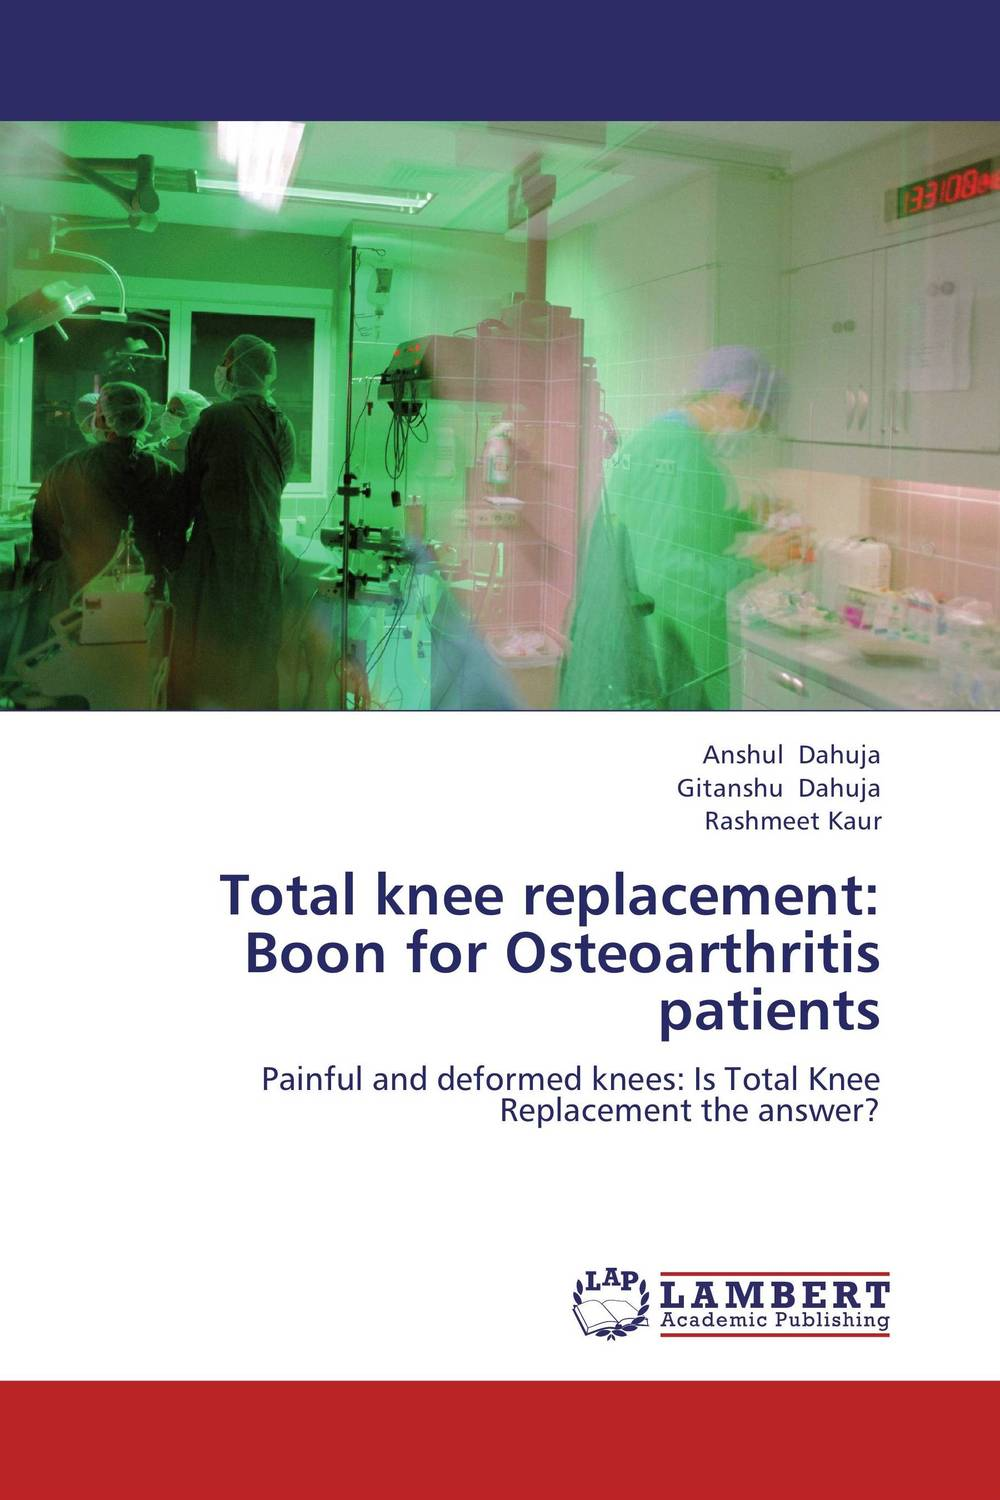 Total knee replacement: Boon for Osteoarthritis patients the operative